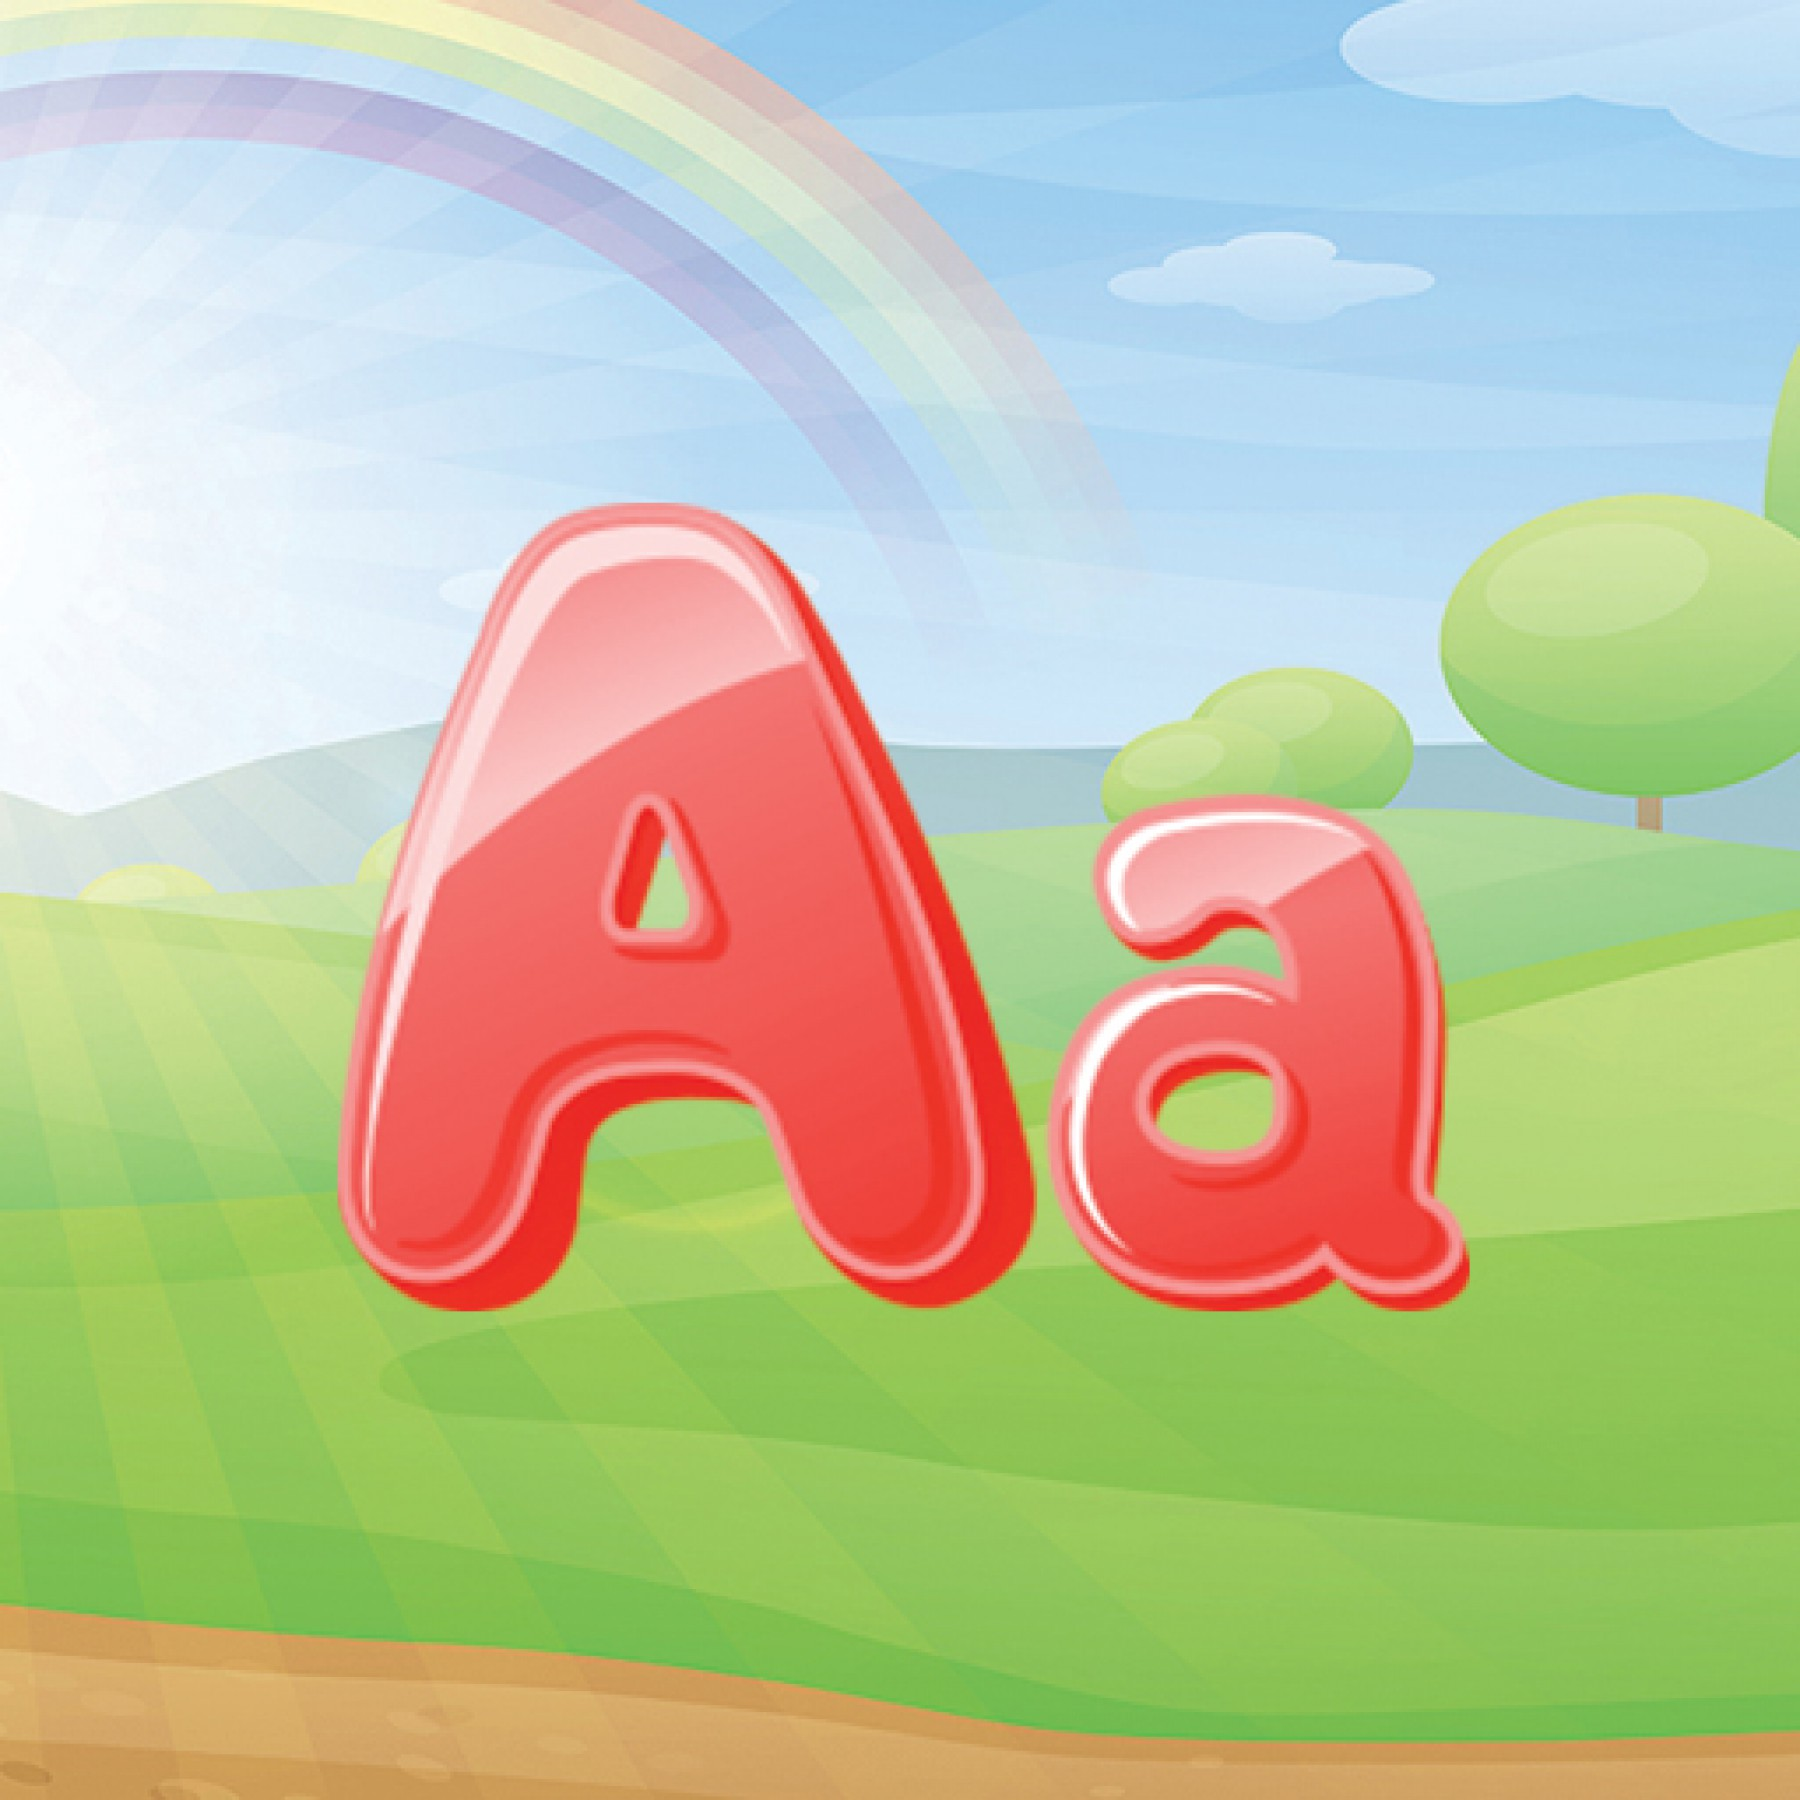 big-alphabet-letters-kids-languages-education-main-location1